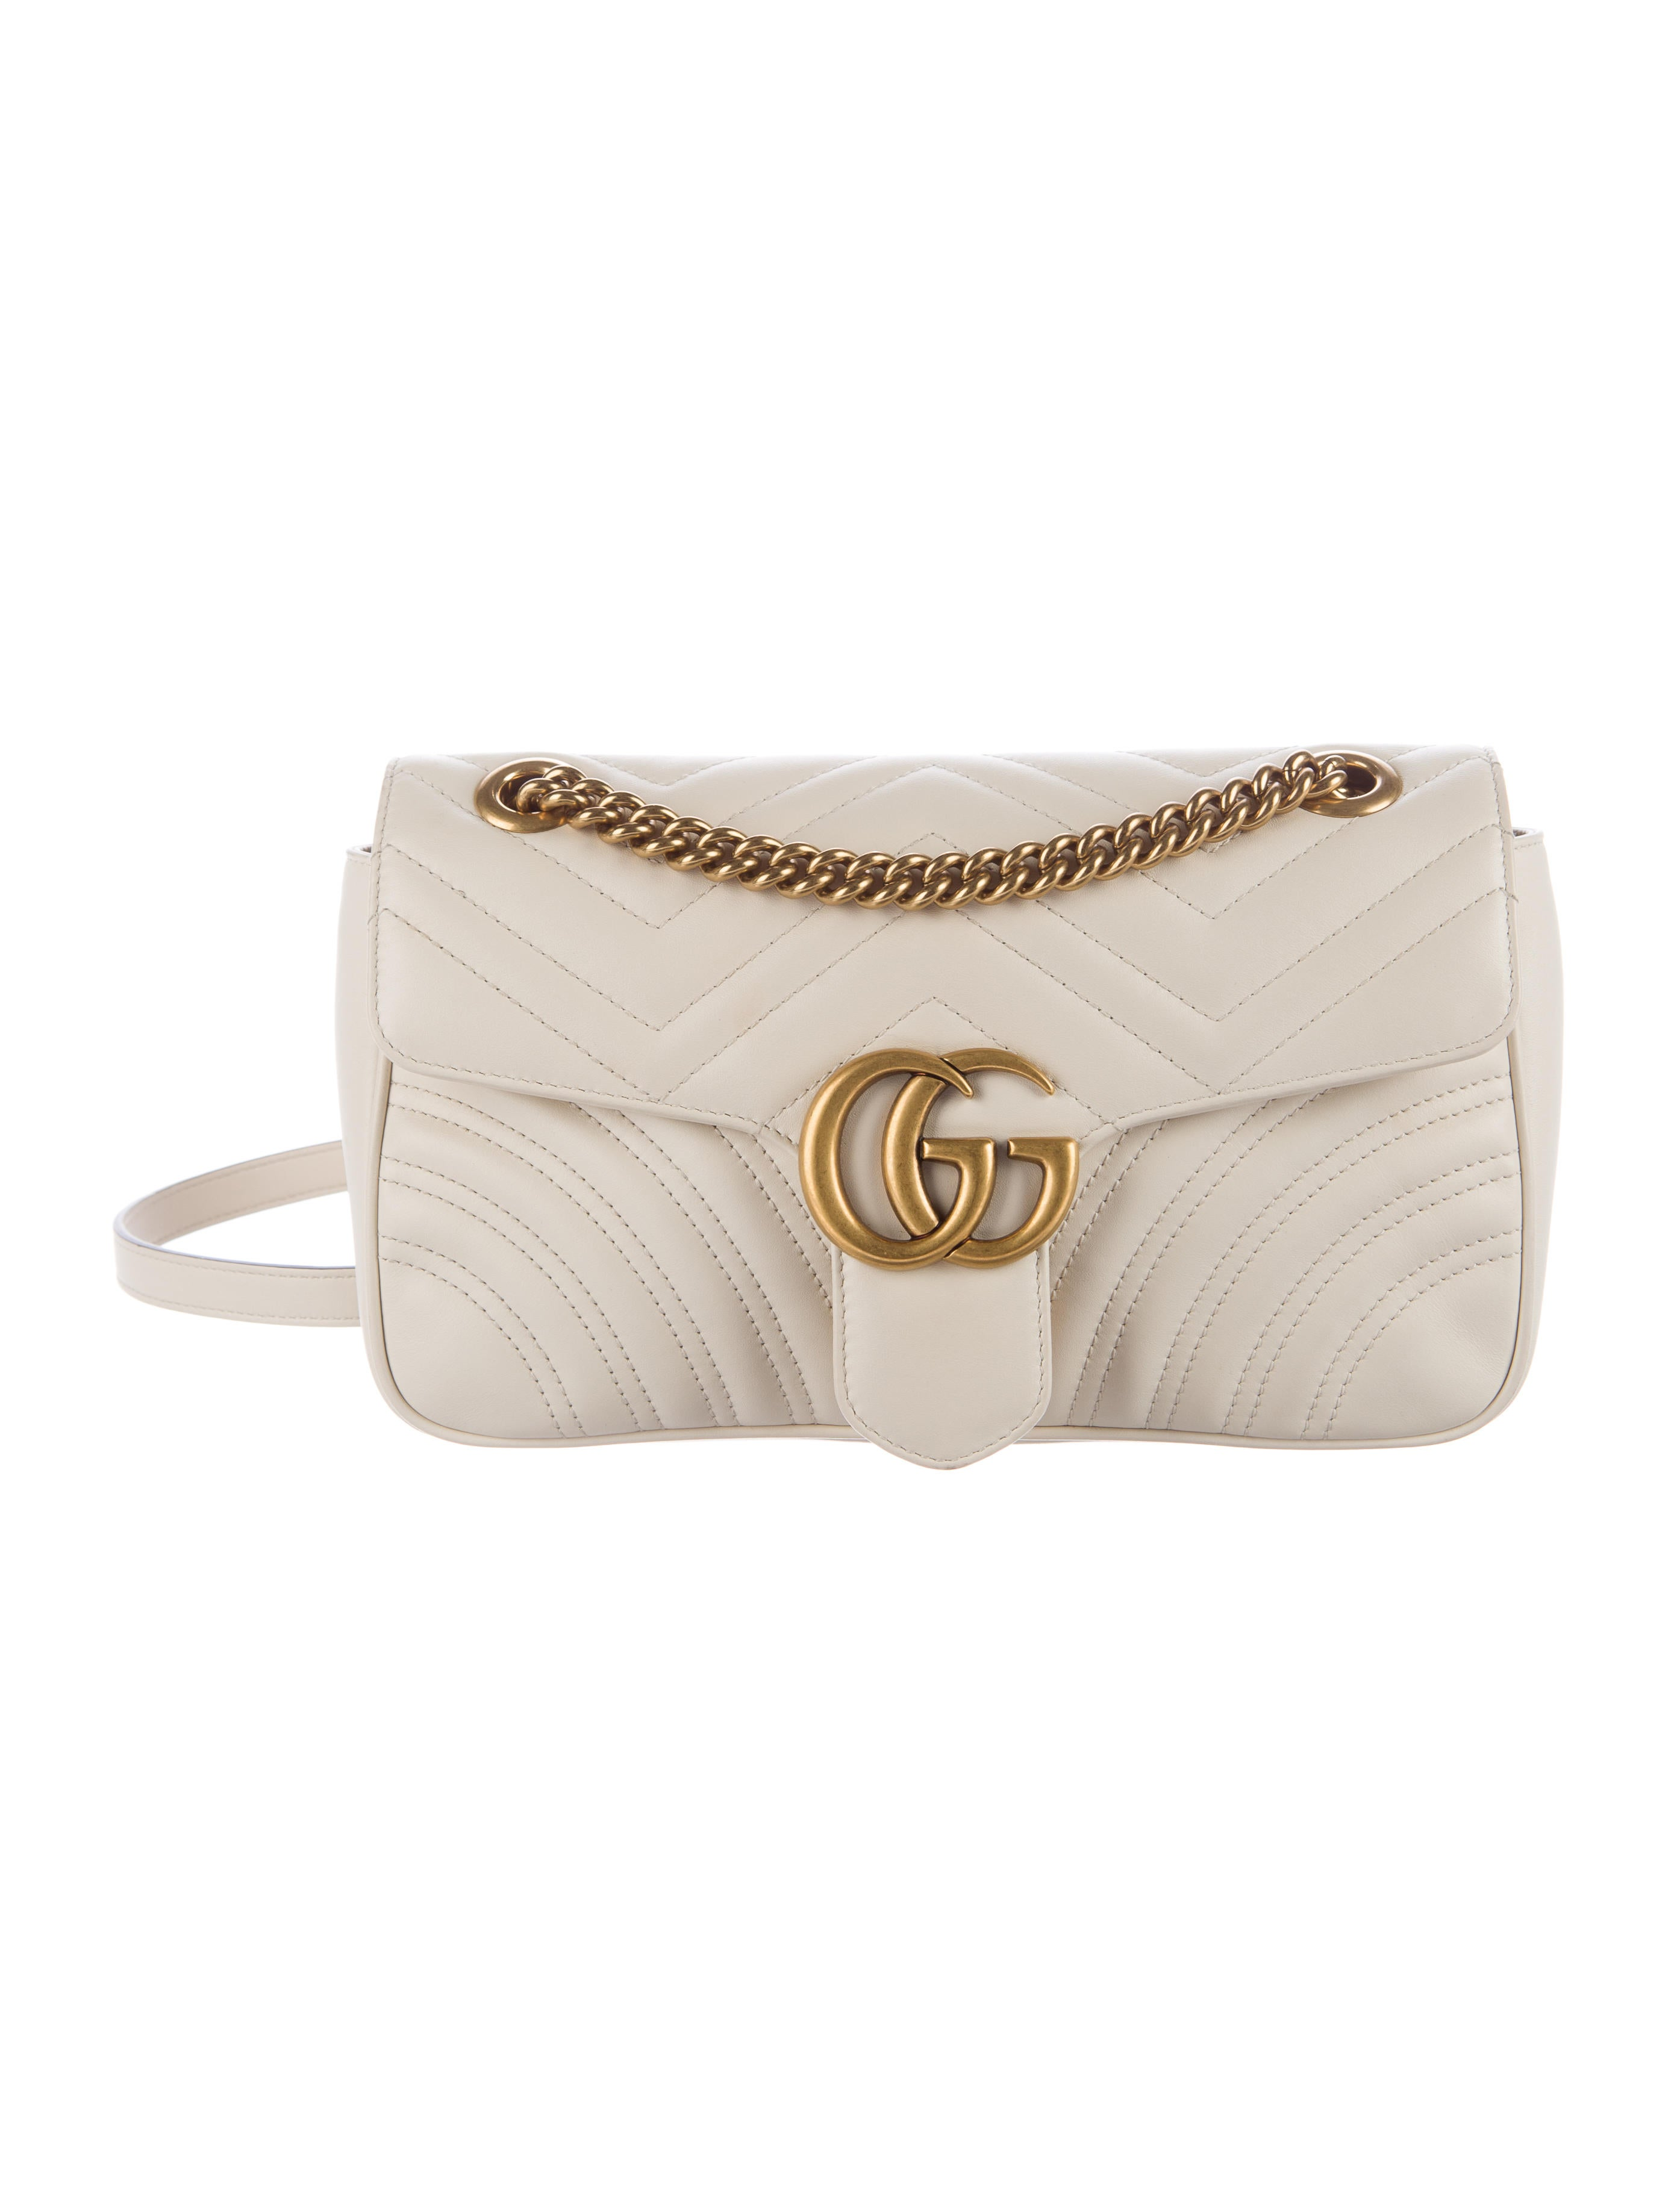 Perfect Gucci Bags Fall Winter 2016 2017 Handbags For Women 23